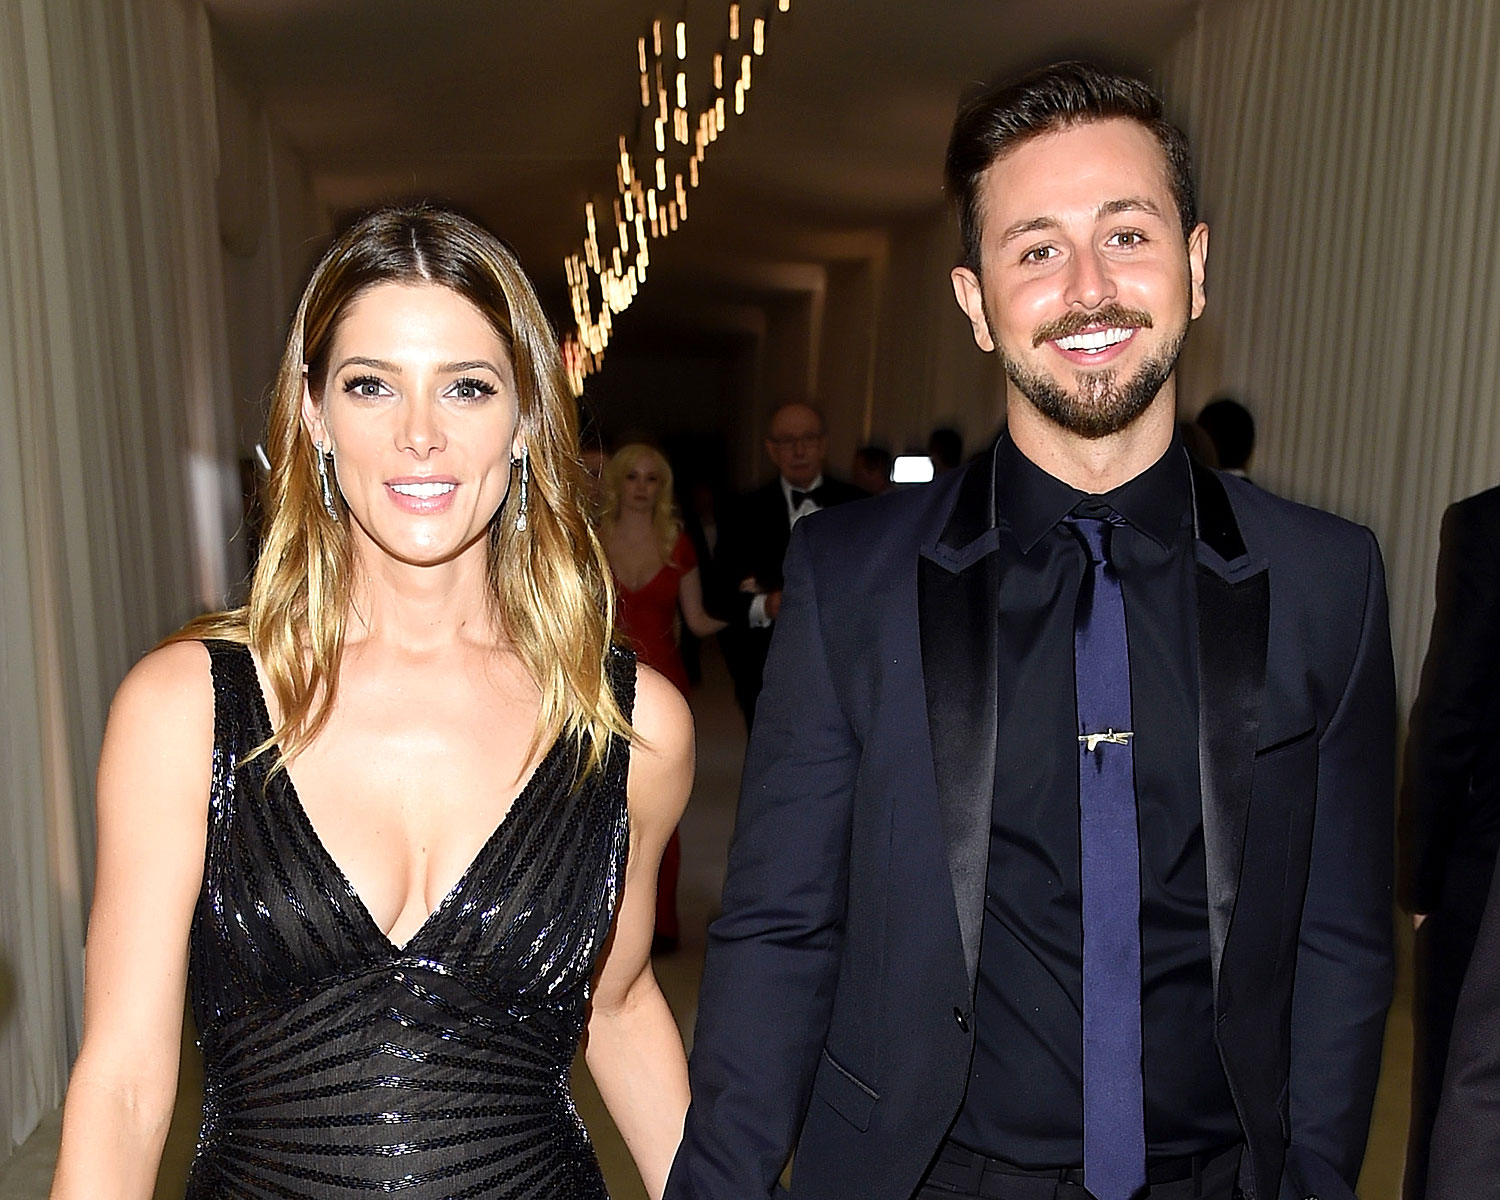 Twilights Ashley Greene Engaged Paul Khoury 16034 additionally Diy Mini Bowties To Dress Up The Party additionally 1039 also Oscars Party Favors furthermore ZCuO2ng. on oscar party ideas favors